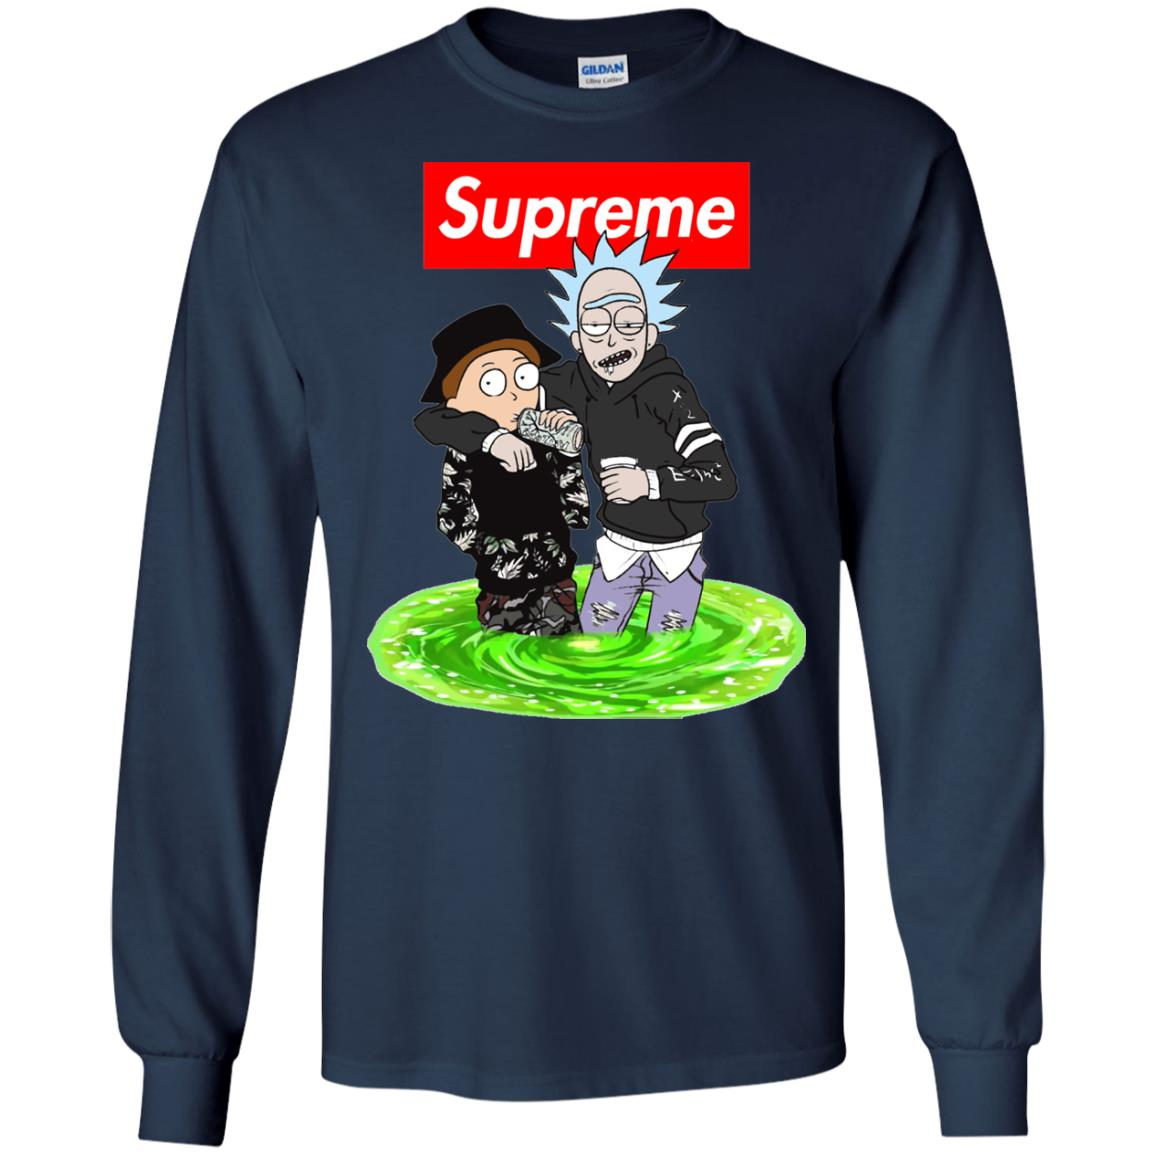 Supreme style Rick and Morty shirt & sweater - Rockatee